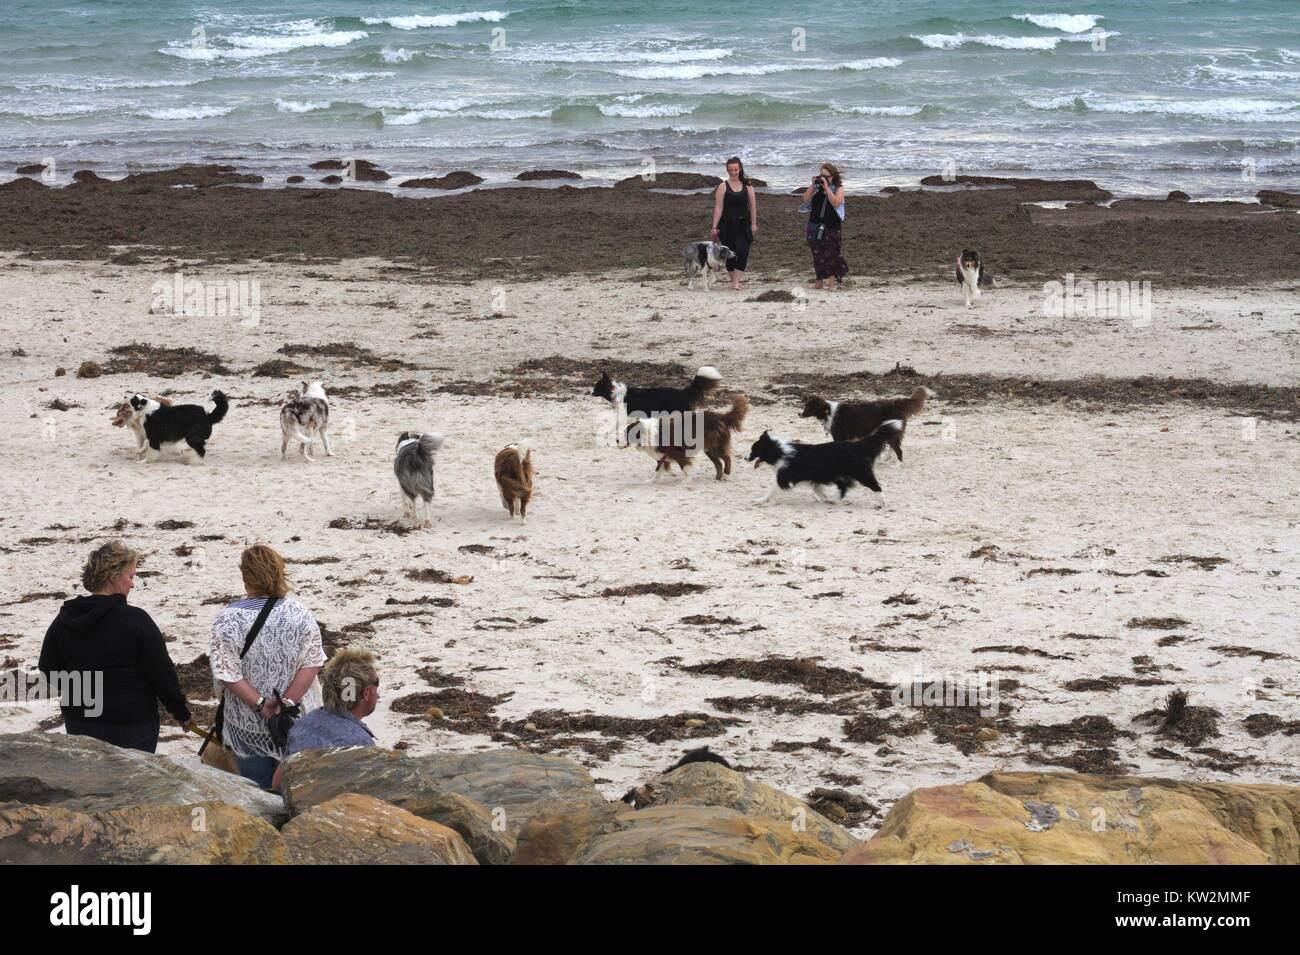 A group of border collies and their owners meet on a windswept beach. Stock Photo